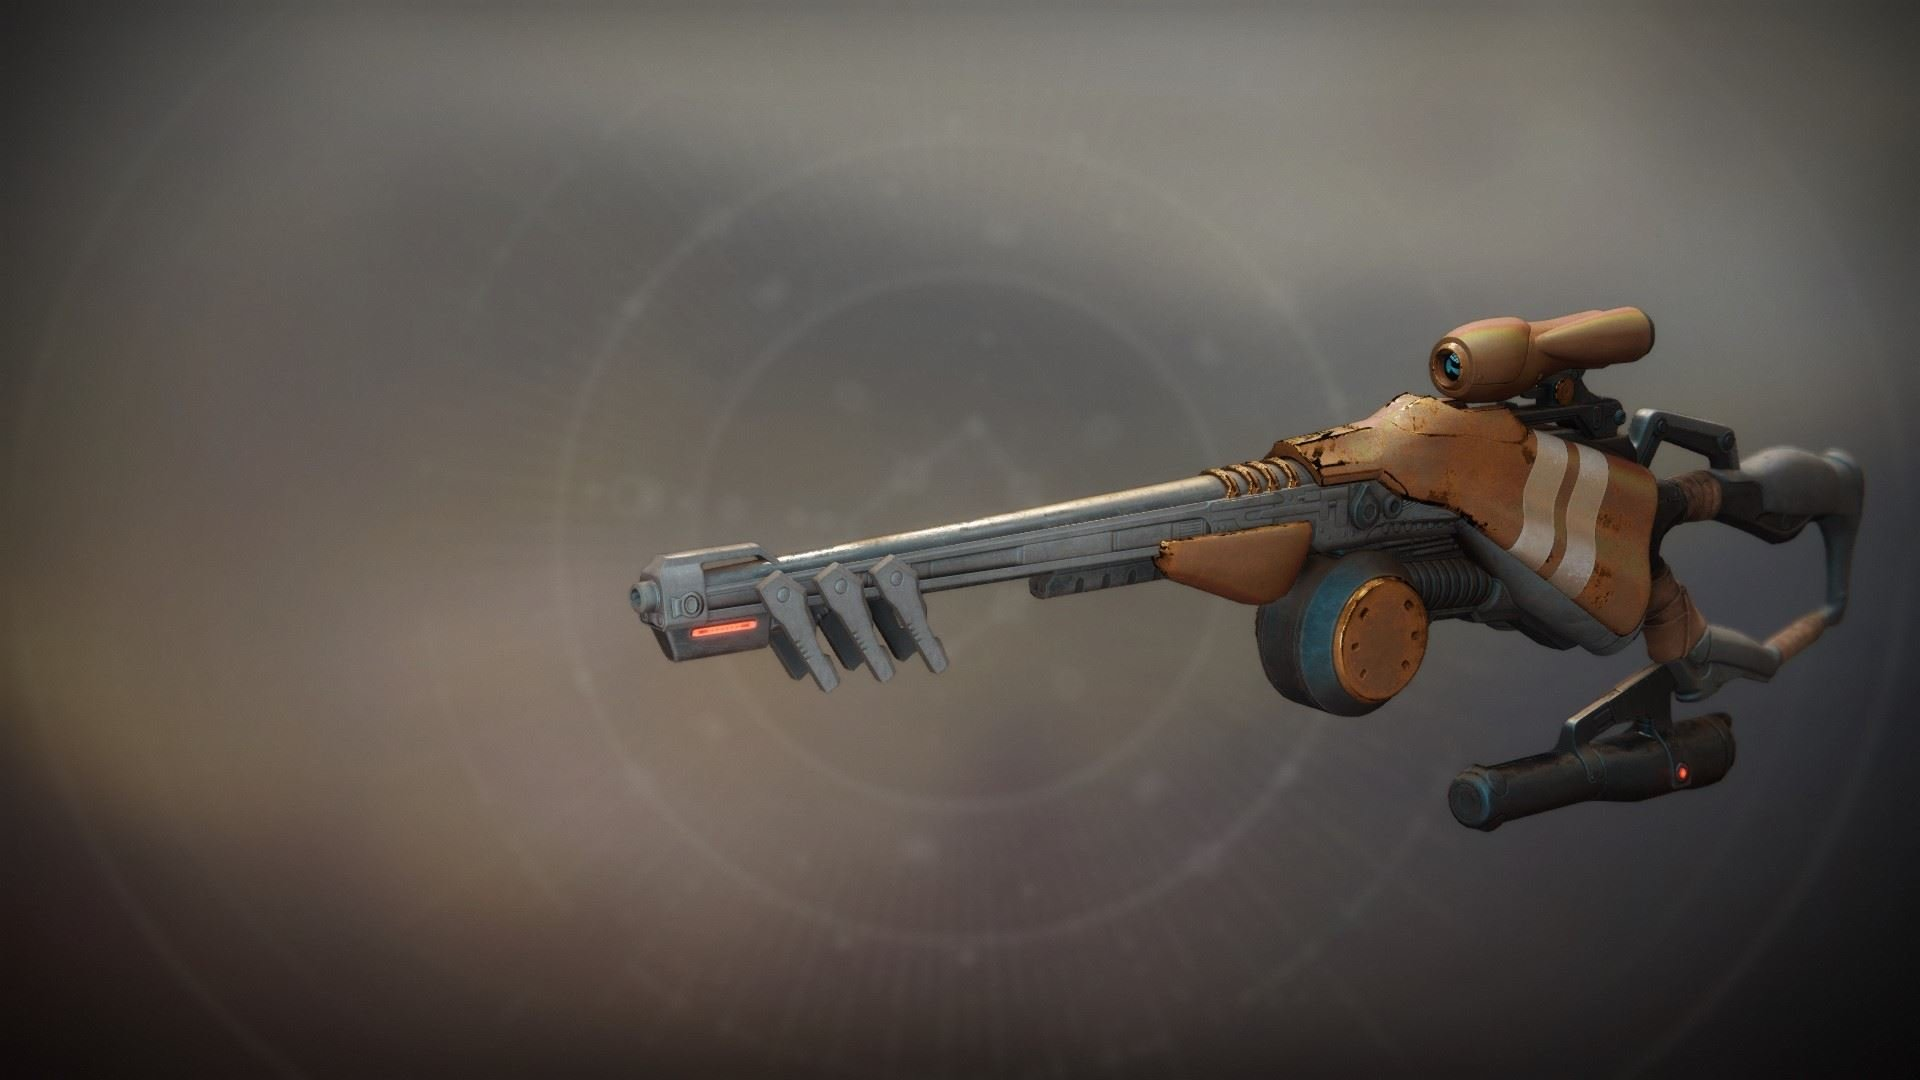 An in-game render of the The Queenbreaker.